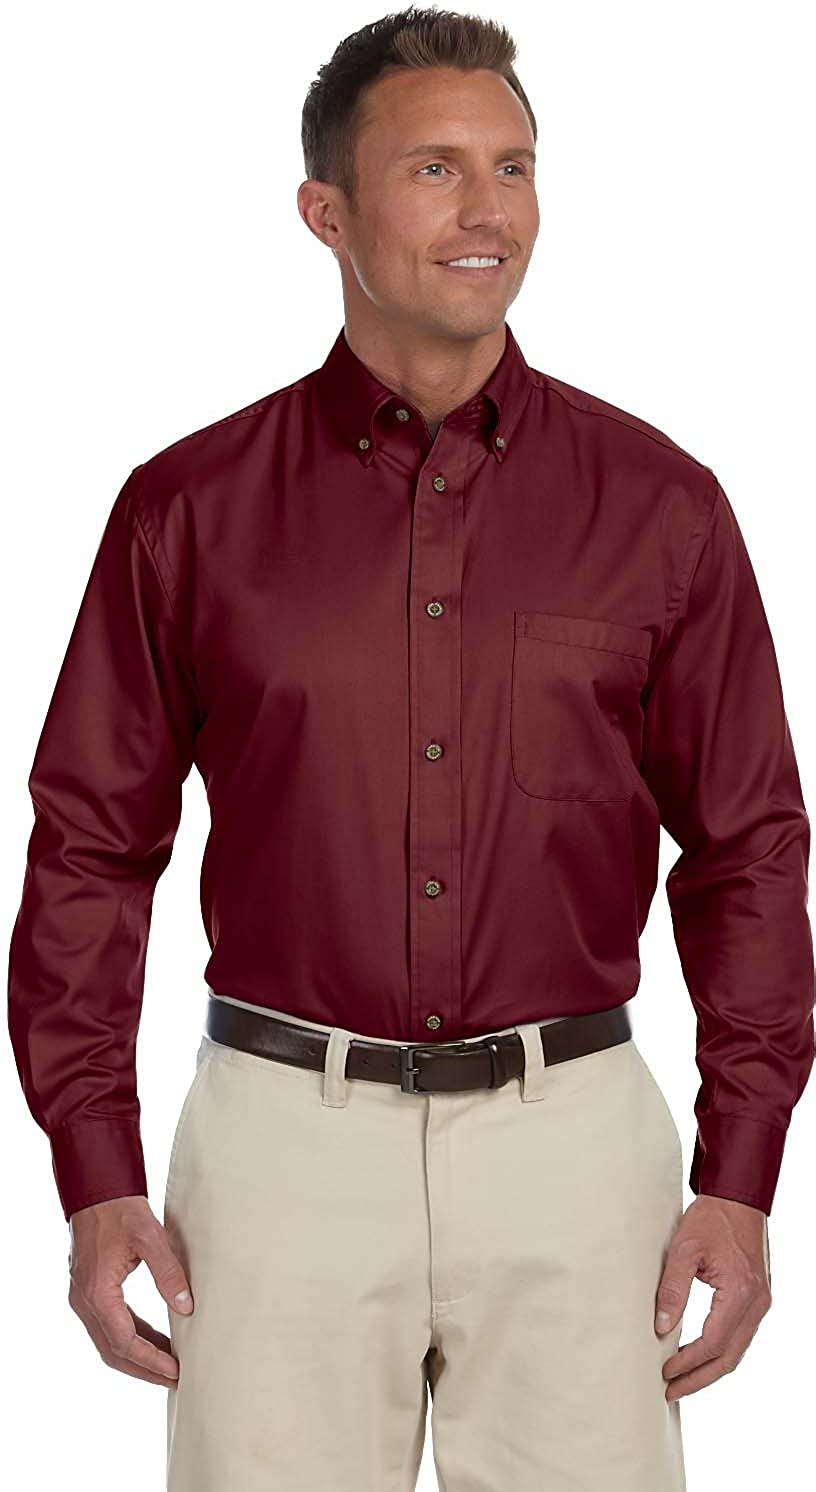 Harriton Men's Long-sleeve Twill Shirt with Stain-release M29804